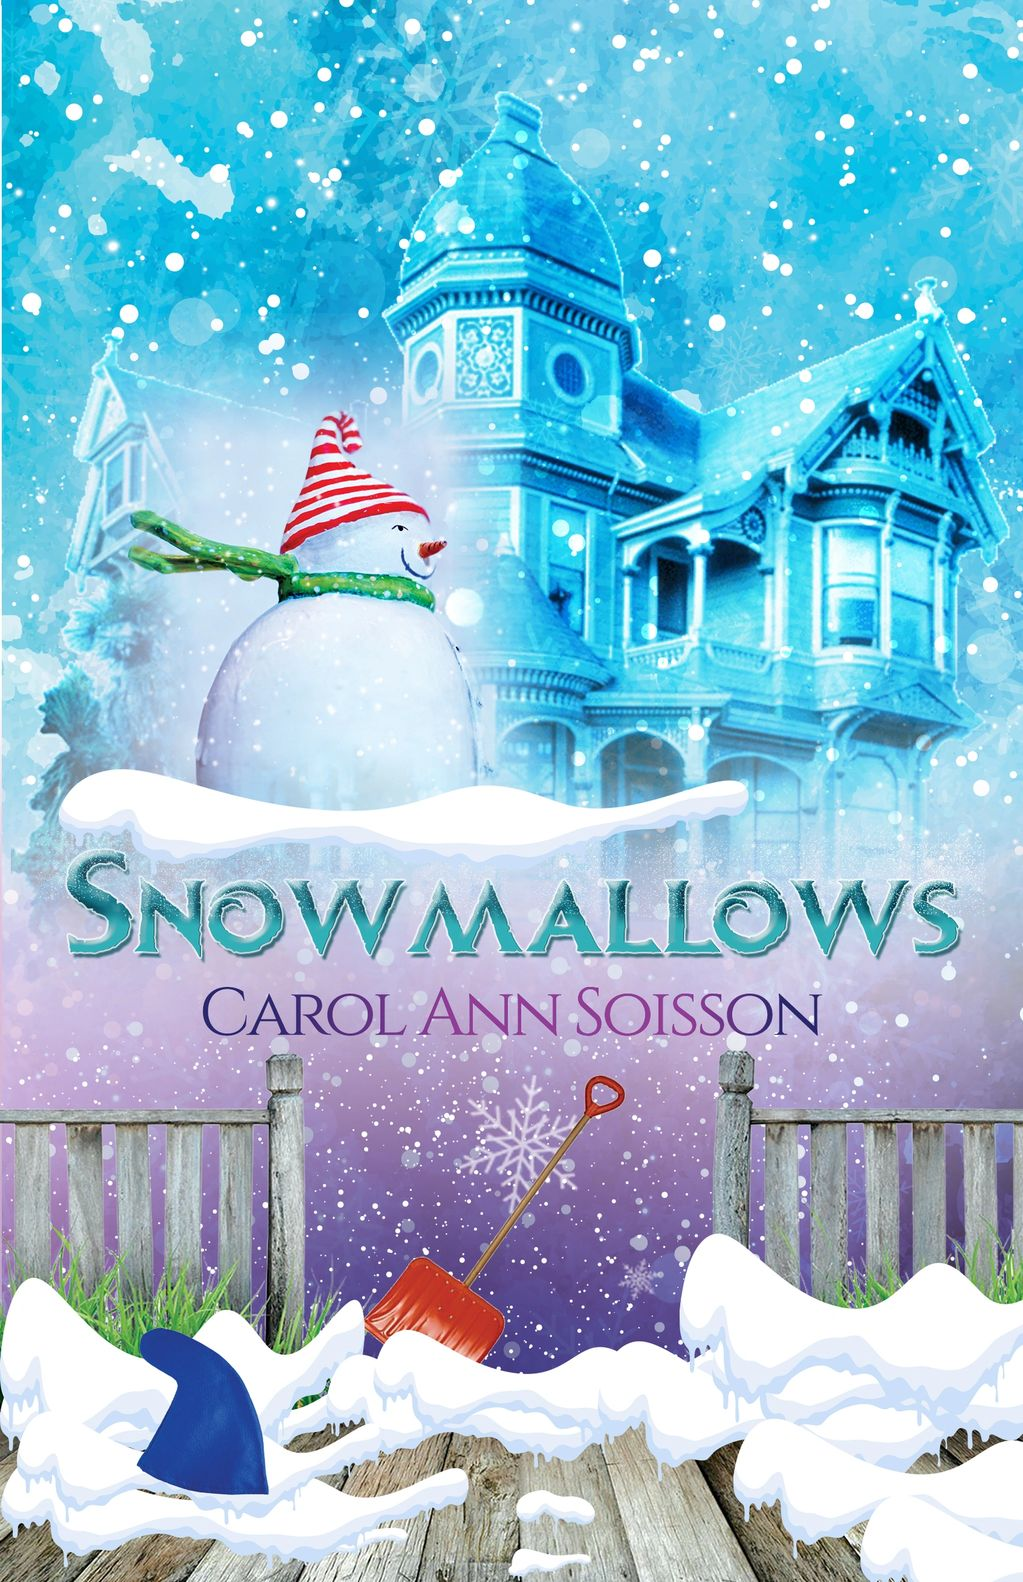 Front cover image of Snowmallows book for kids